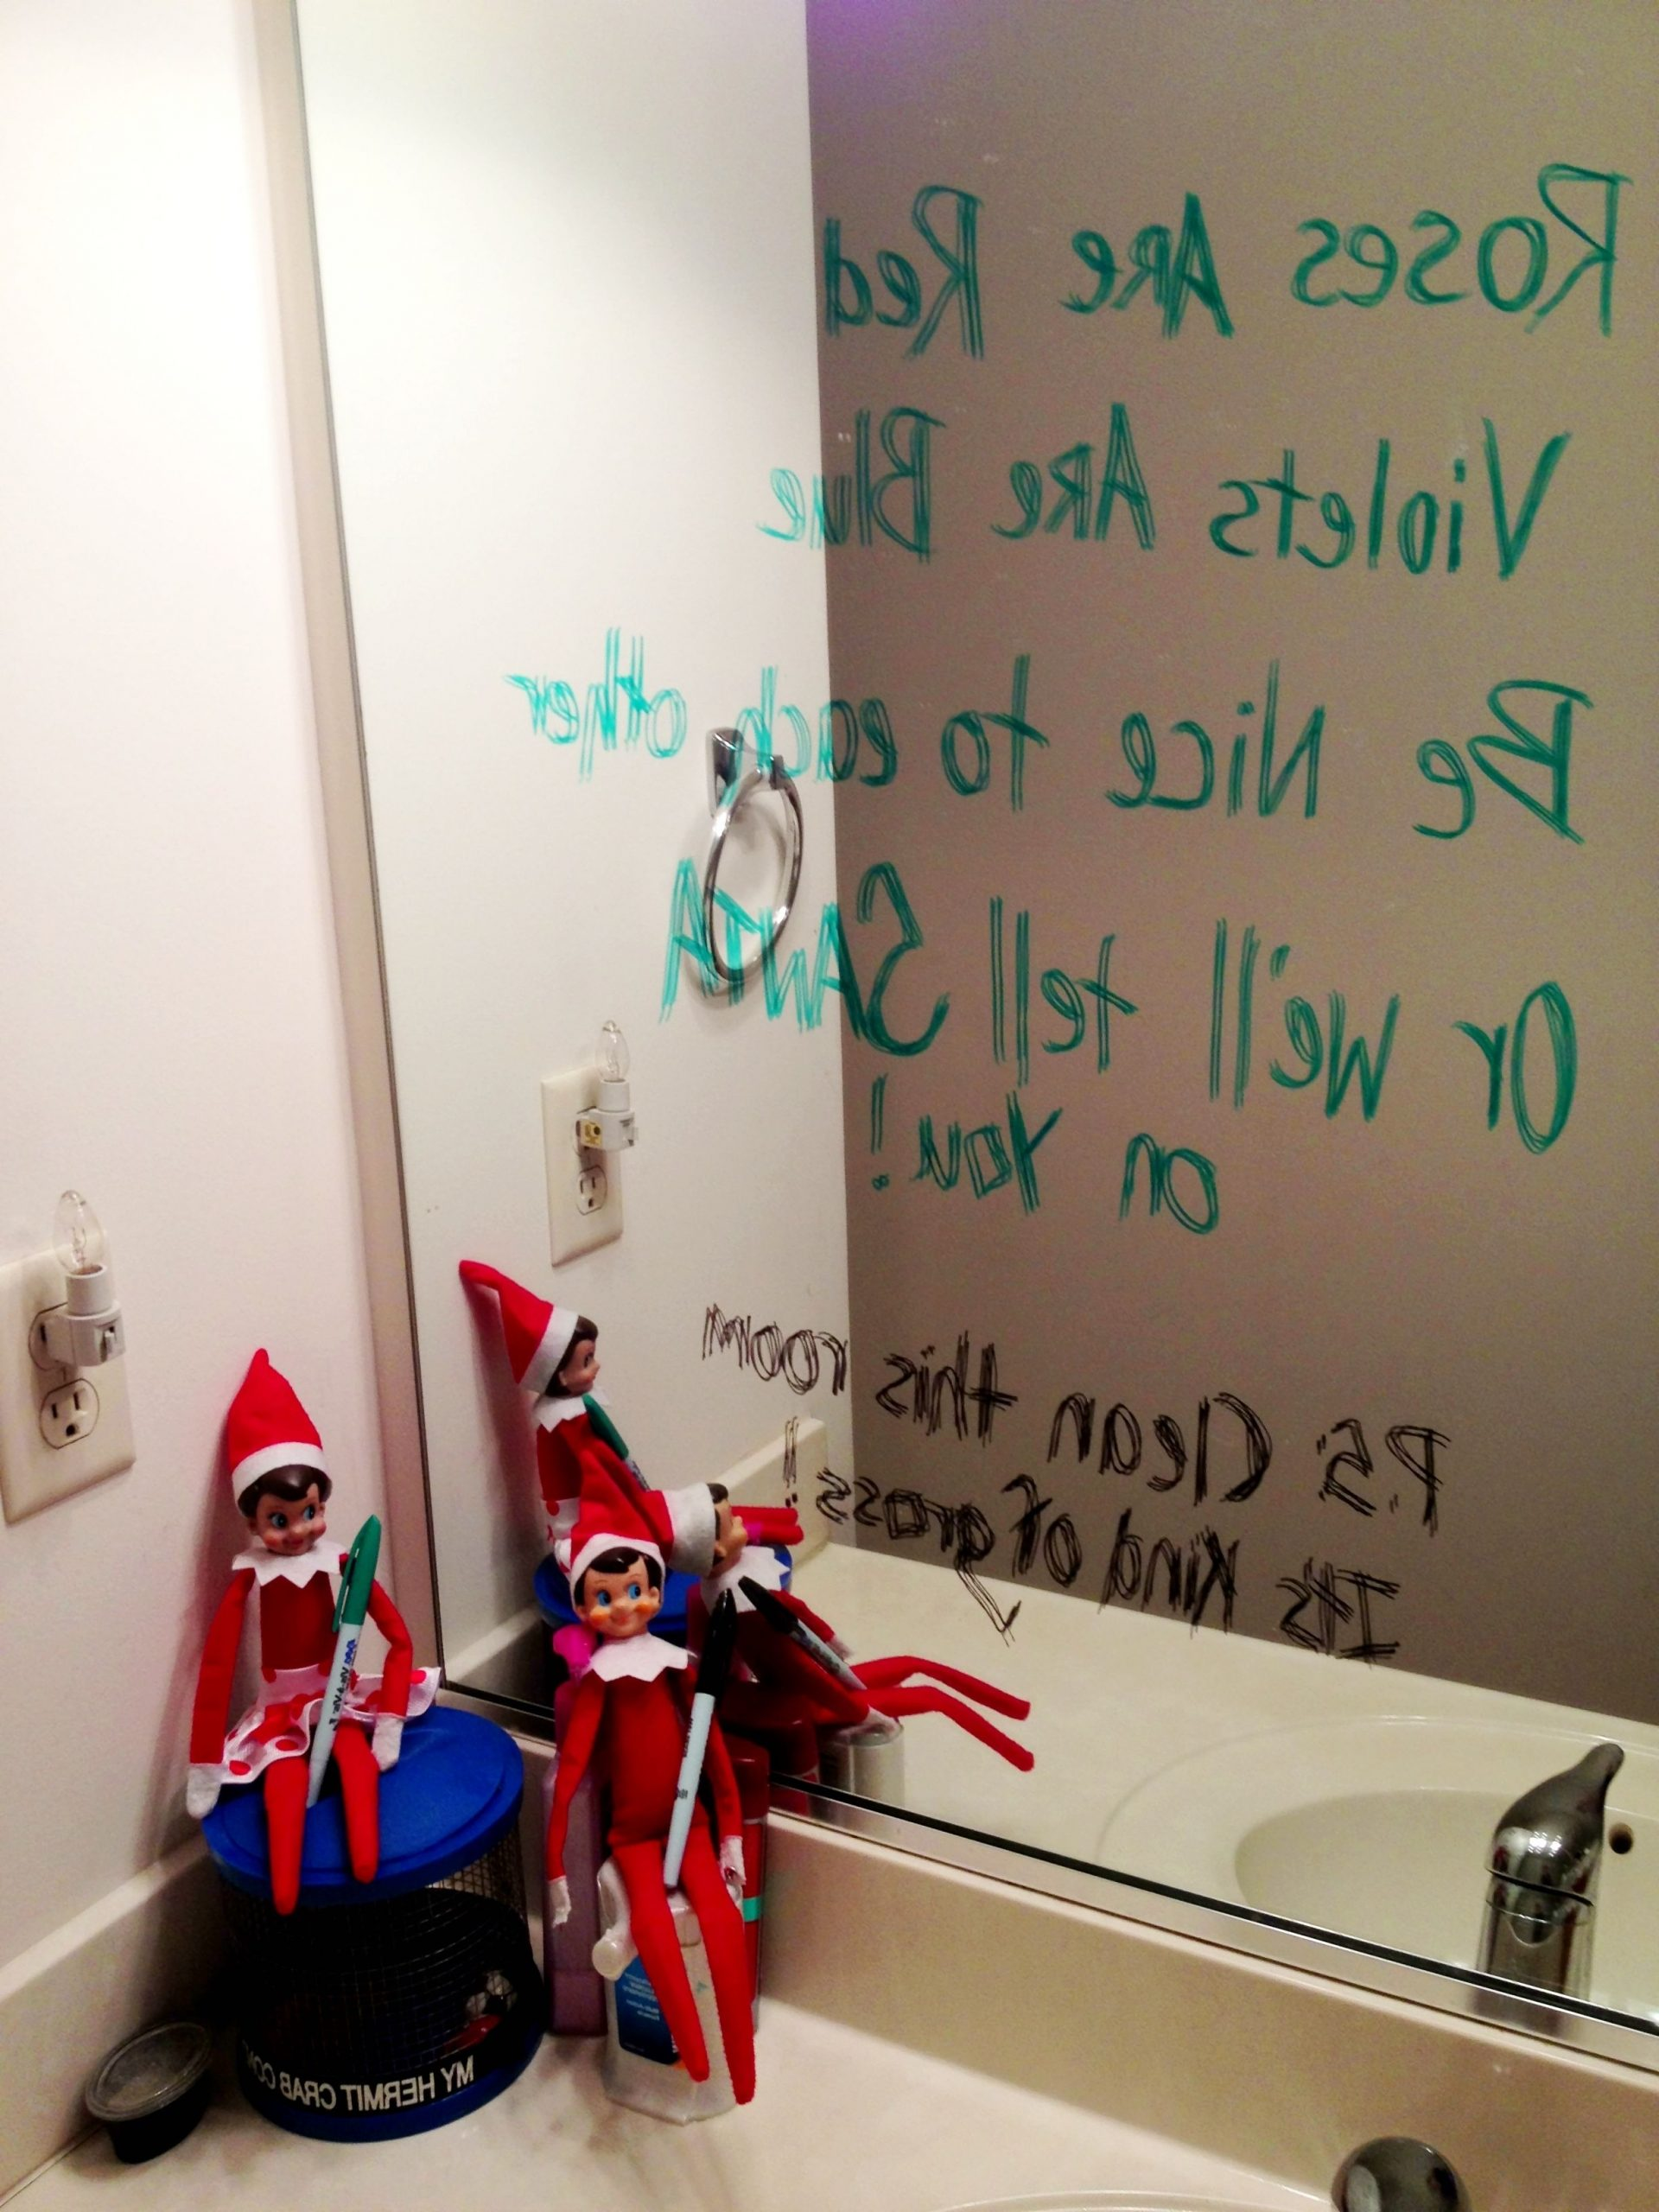 Message On The Mirror ~ Elf On The Shelf. Be Aware: My Elf On The Shelf For Bathroom